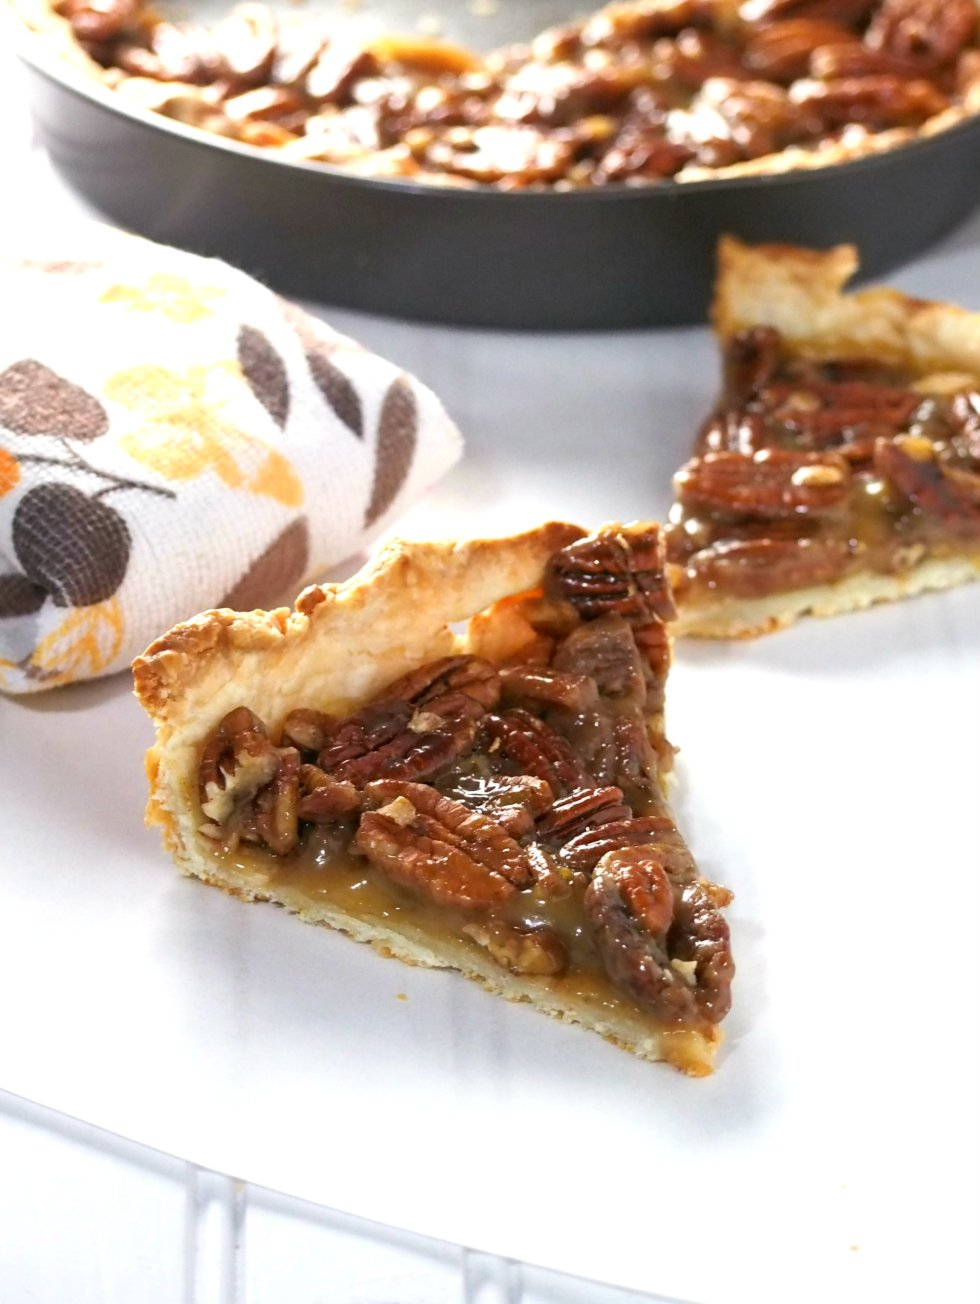 The best pecan pie ever. Just moderately sweet and loaded with crunchy pecan goodness.